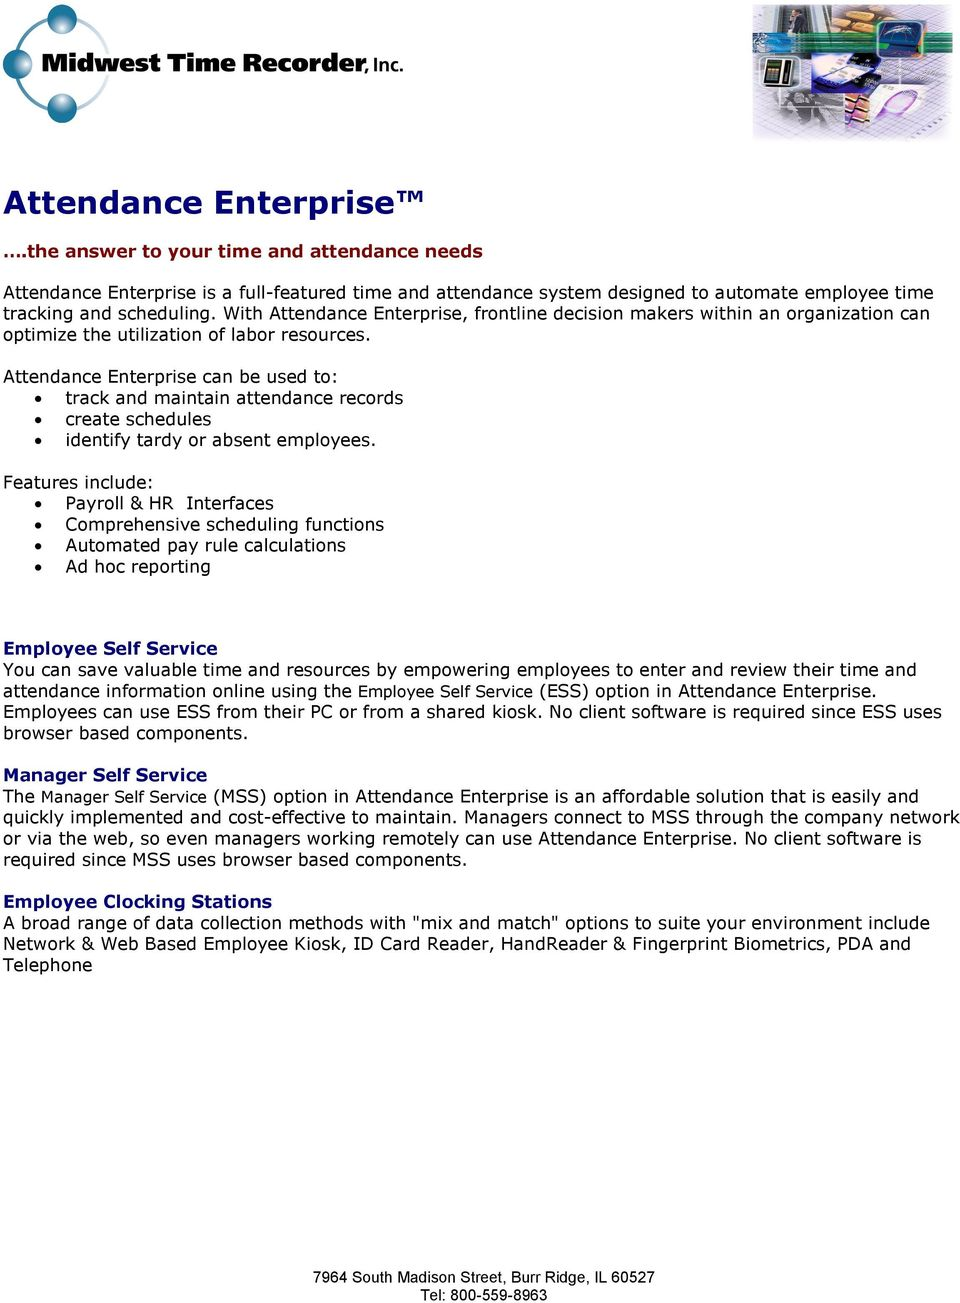 Attendance Enterprise can be used to: track and maintain attendance records create schedules identify tardy or absent employees.